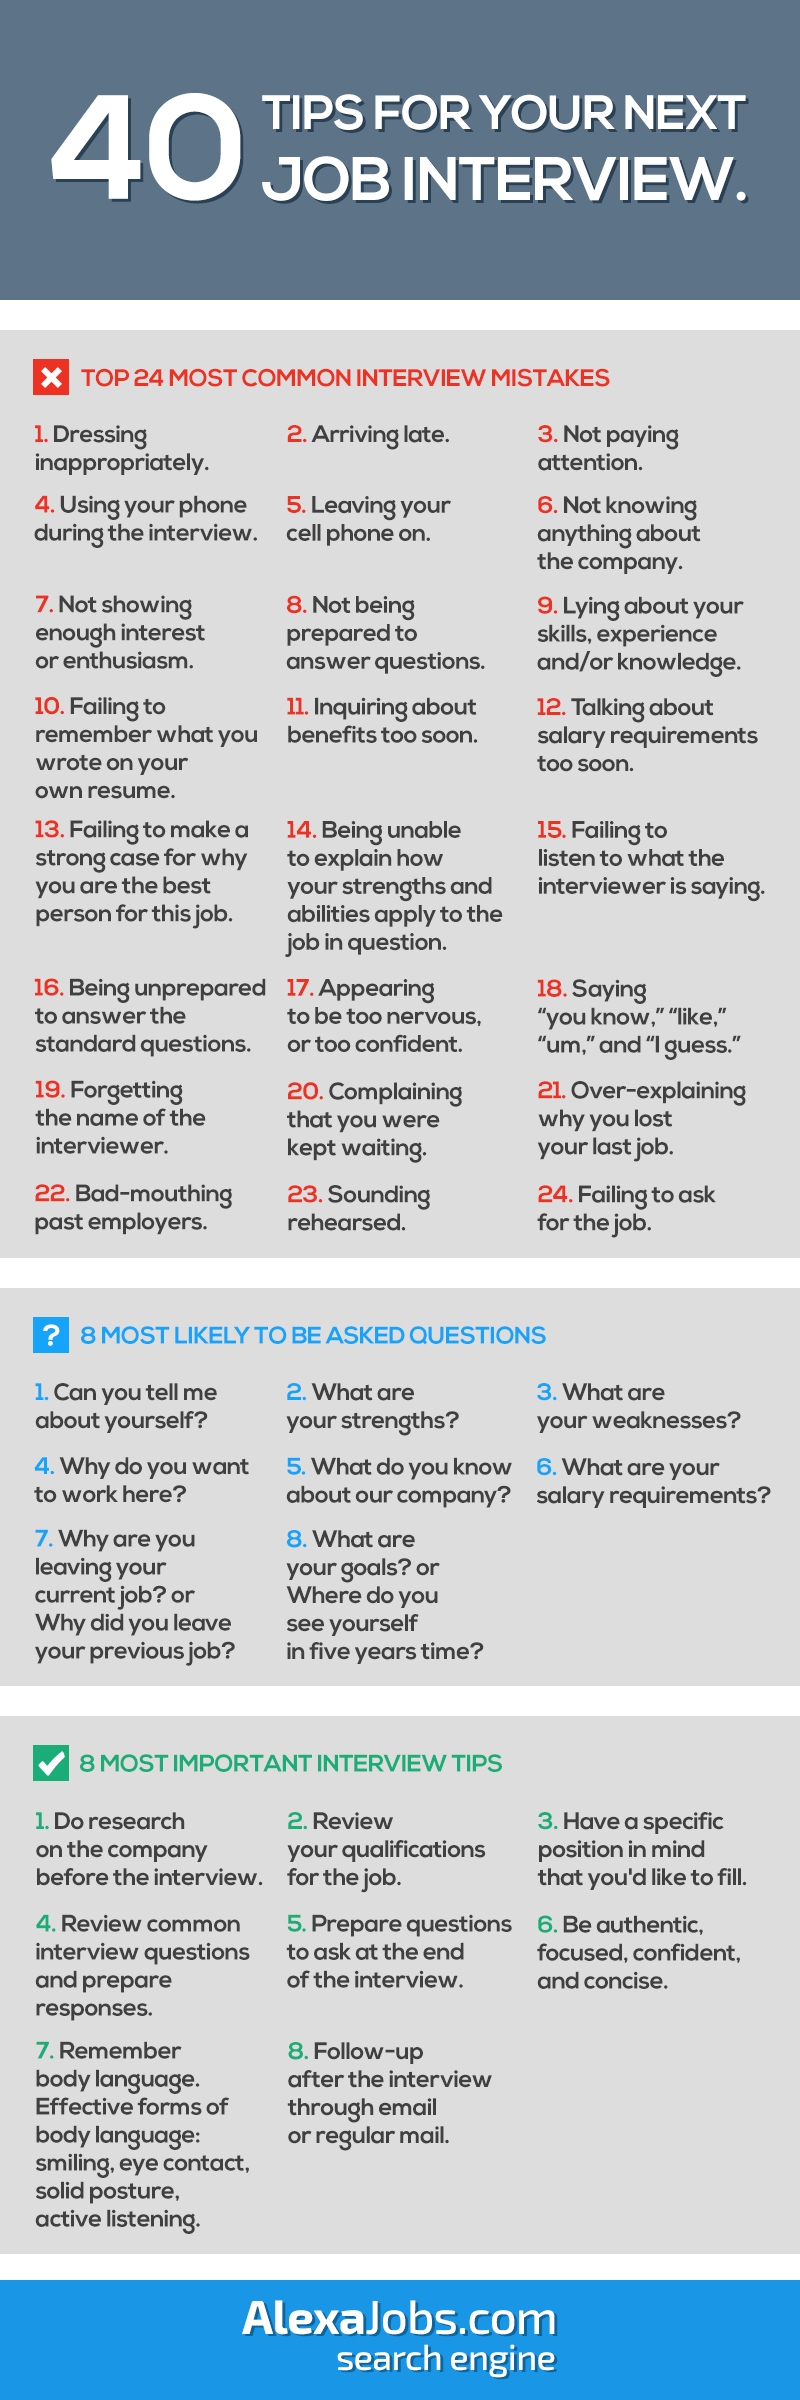 best images about career advice interview job 17 best images about career advice interview job seekers and you deserve